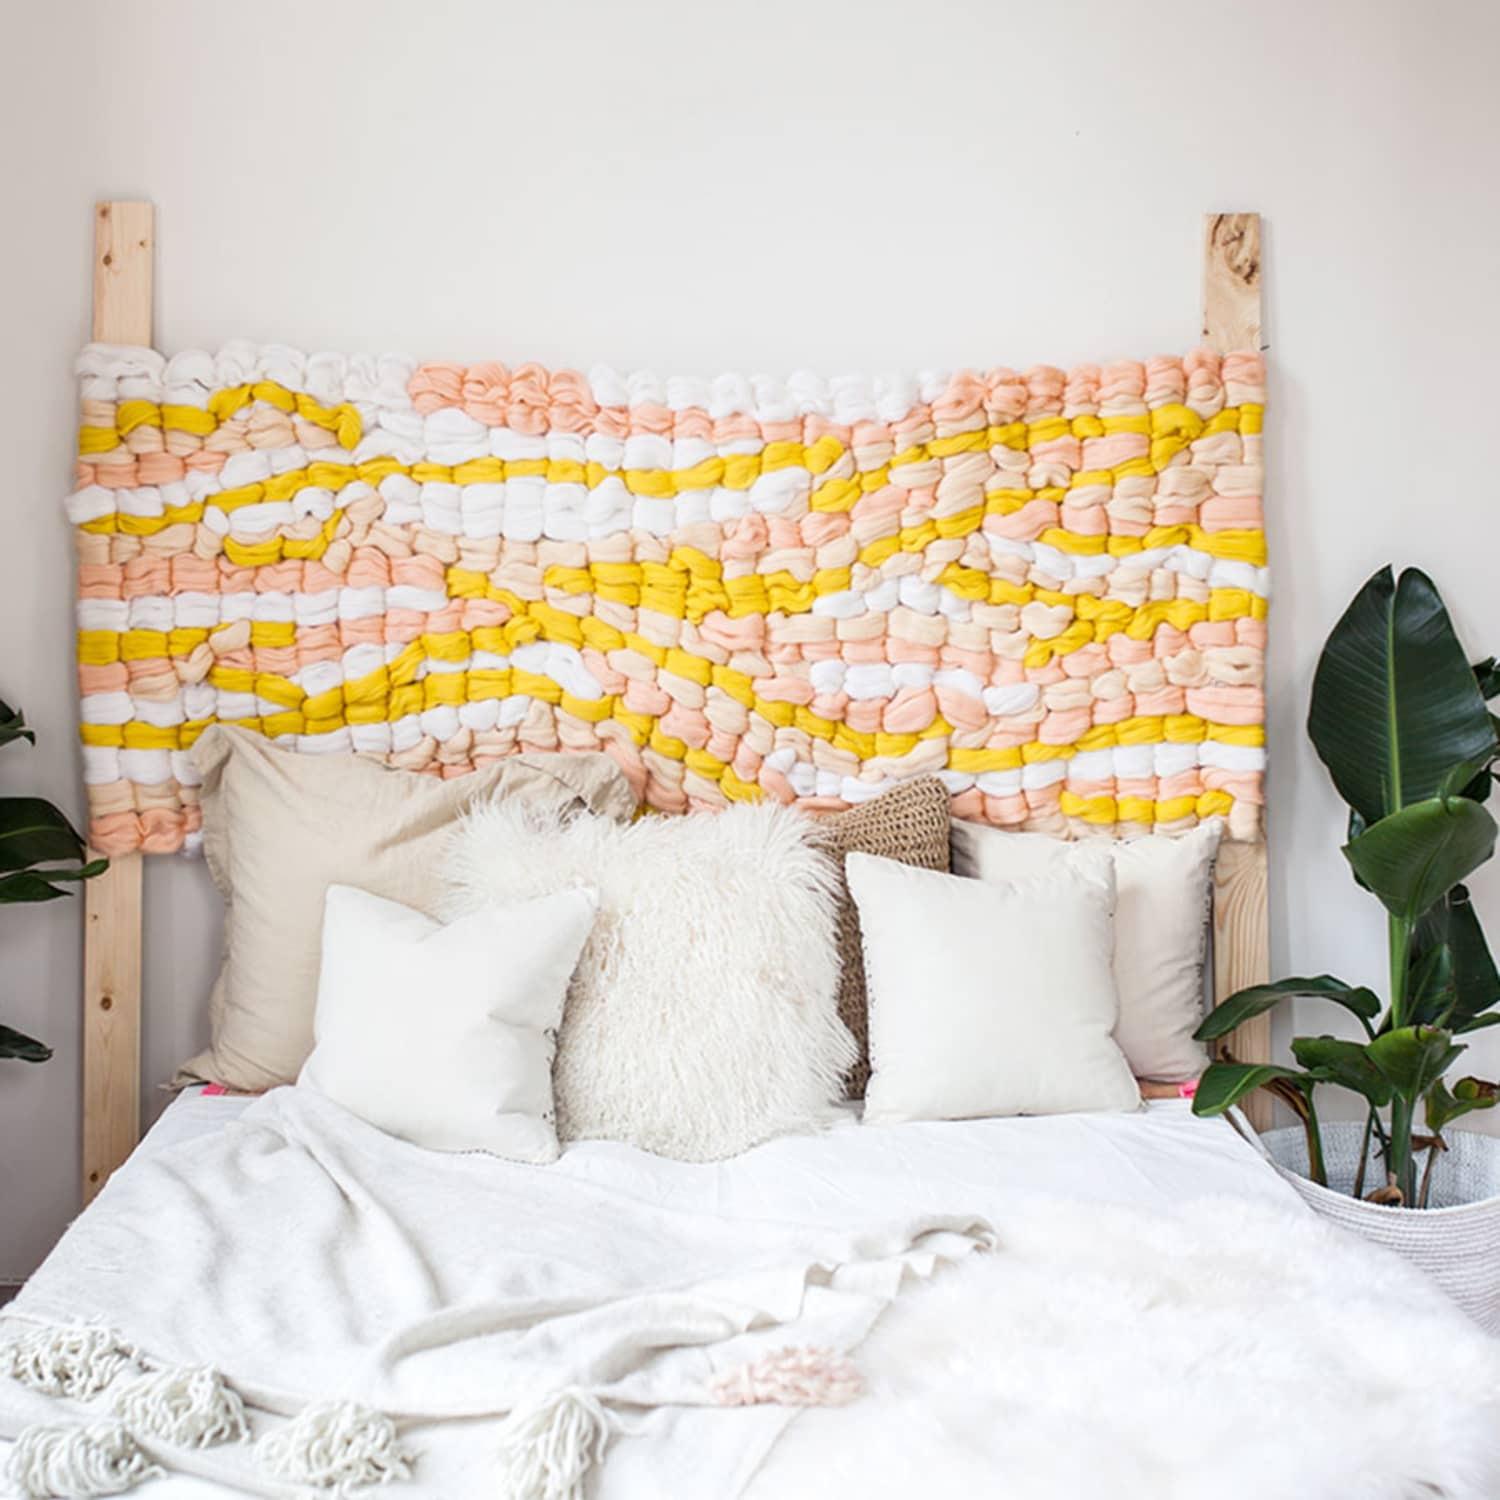 Diy Woven Headboard Project Ideas Apartment Therapy